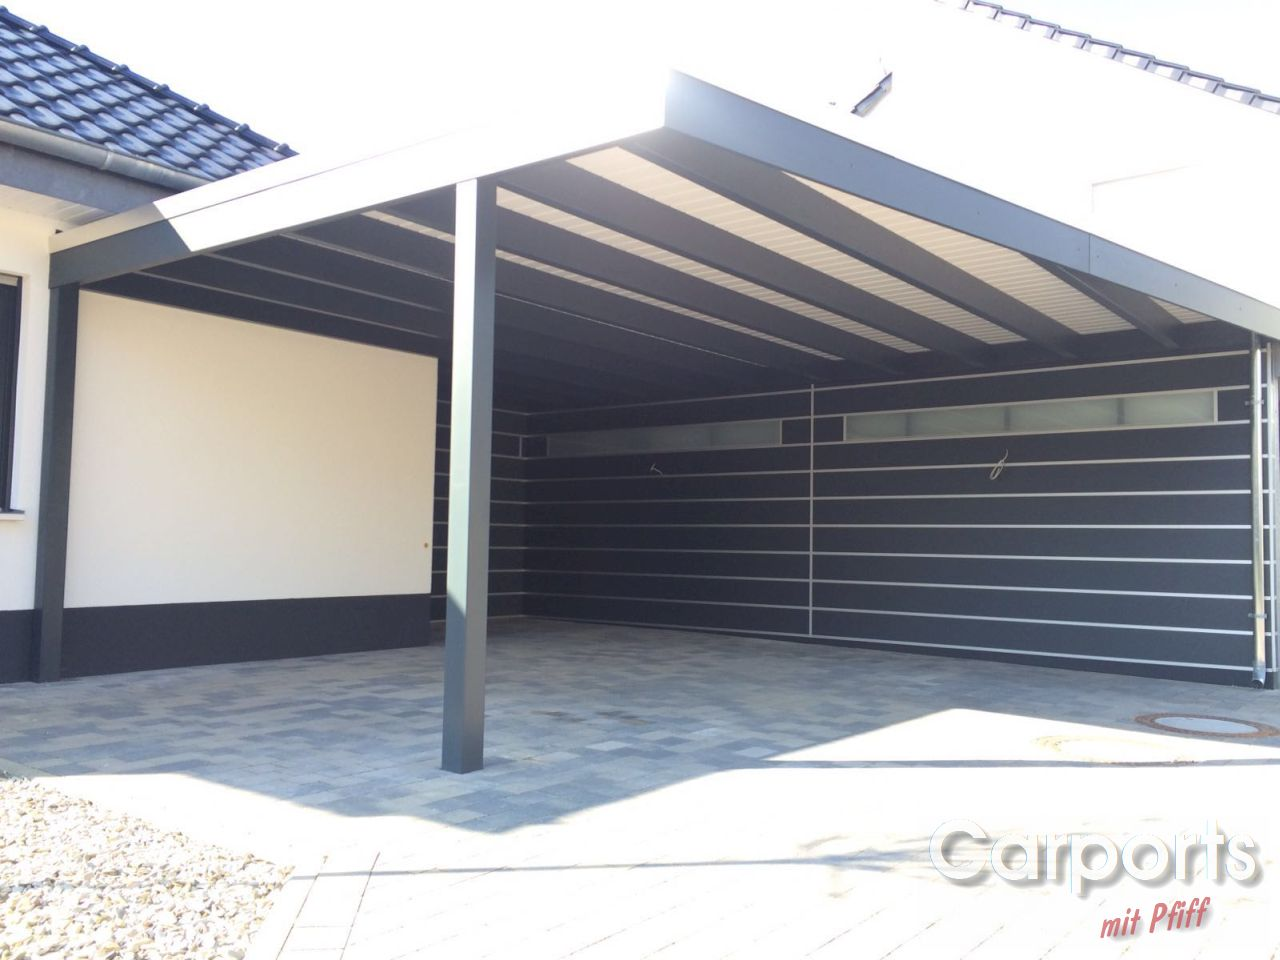 carport bauhaus hpl mit abstellraum und seitenwand carports mit pfiff. Black Bedroom Furniture Sets. Home Design Ideas